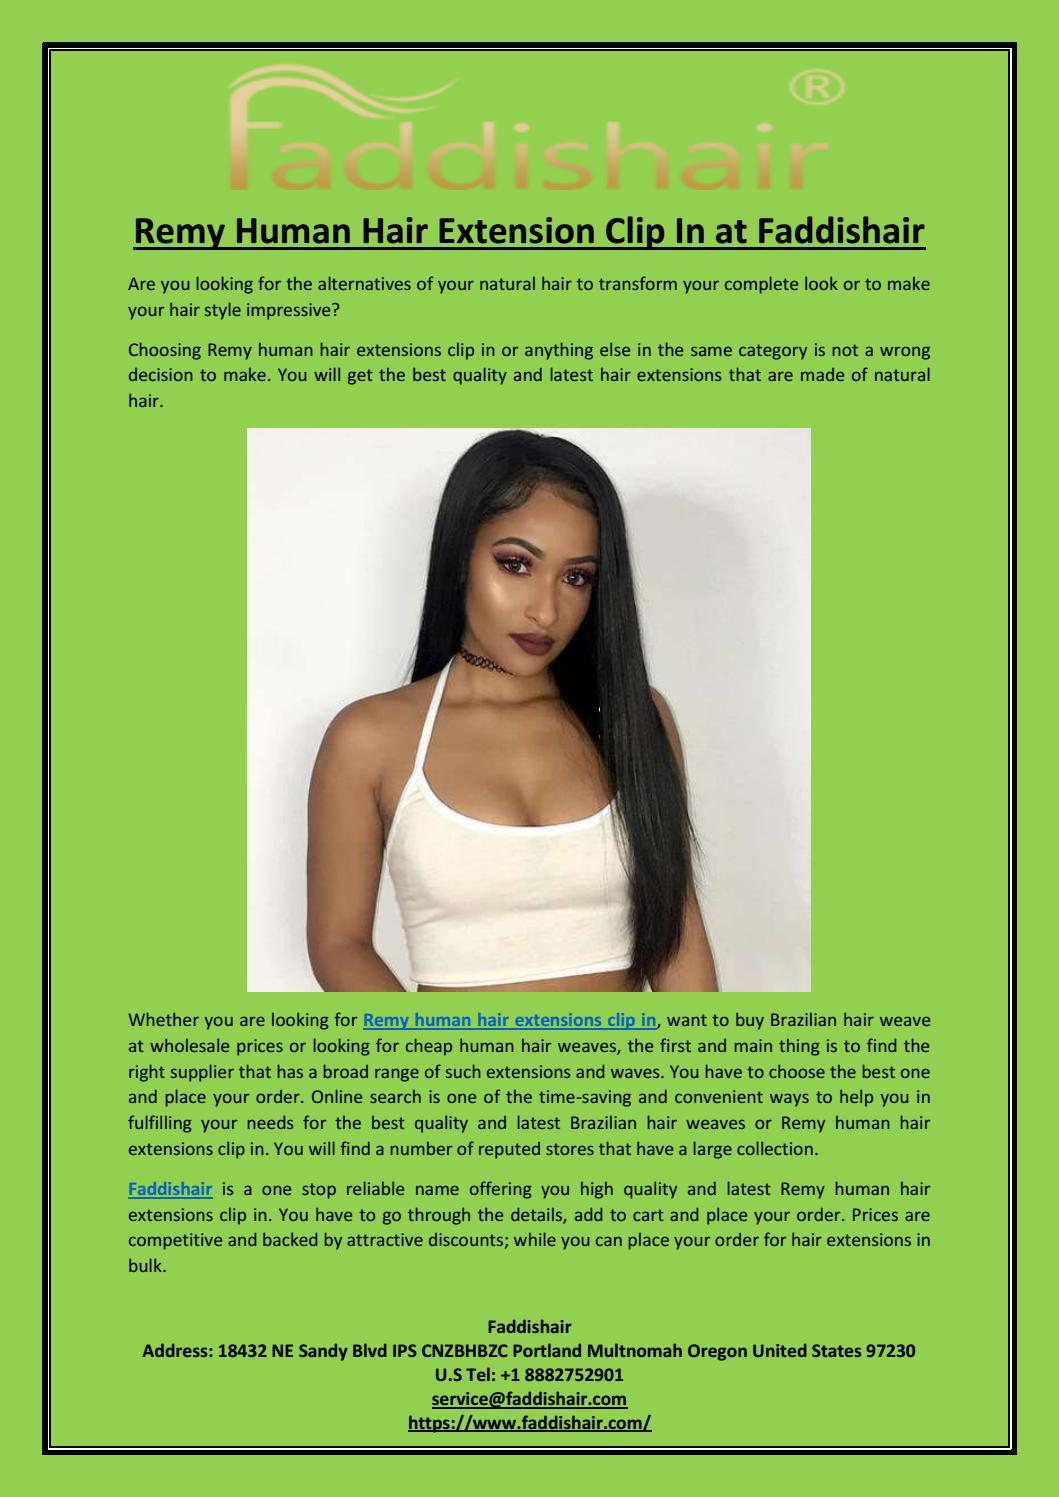 Remy Human Hair Extension Clip In At Faddishair By Faddis Hair Issuu